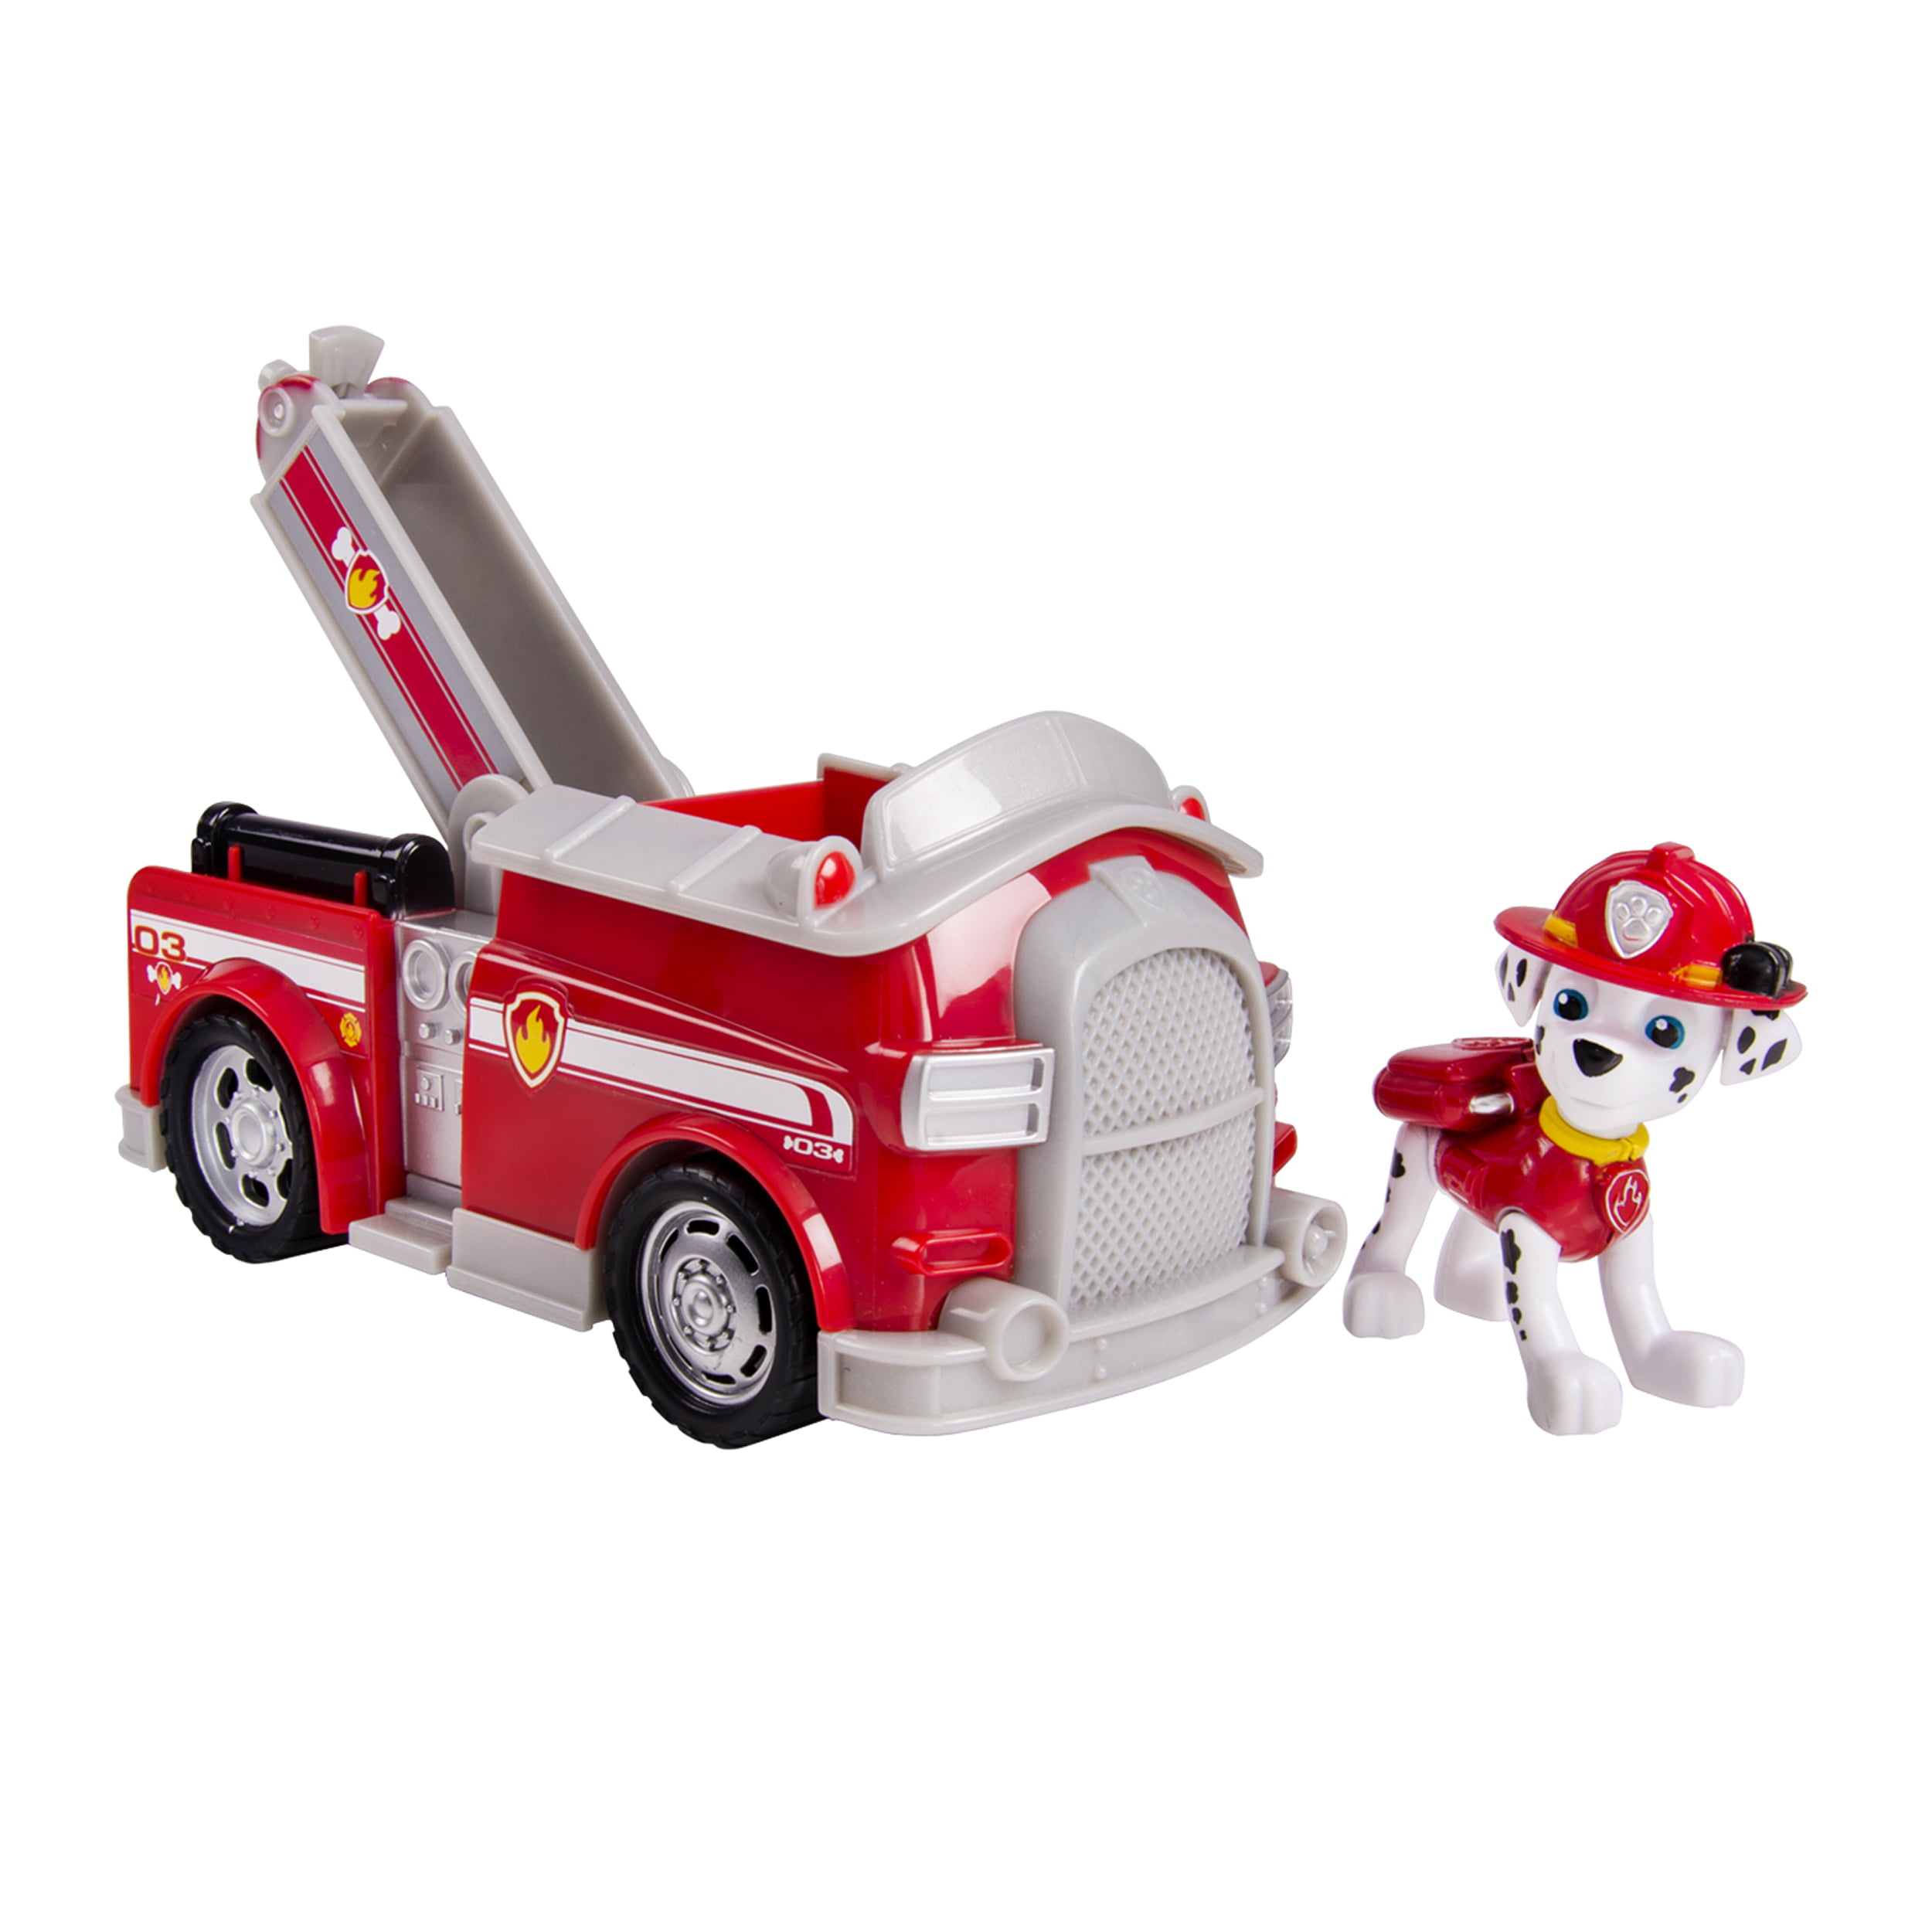 Paw Patrol Marshall's Fire Fightin' Truck, Vehicle and Figure by Spin Master Ltd